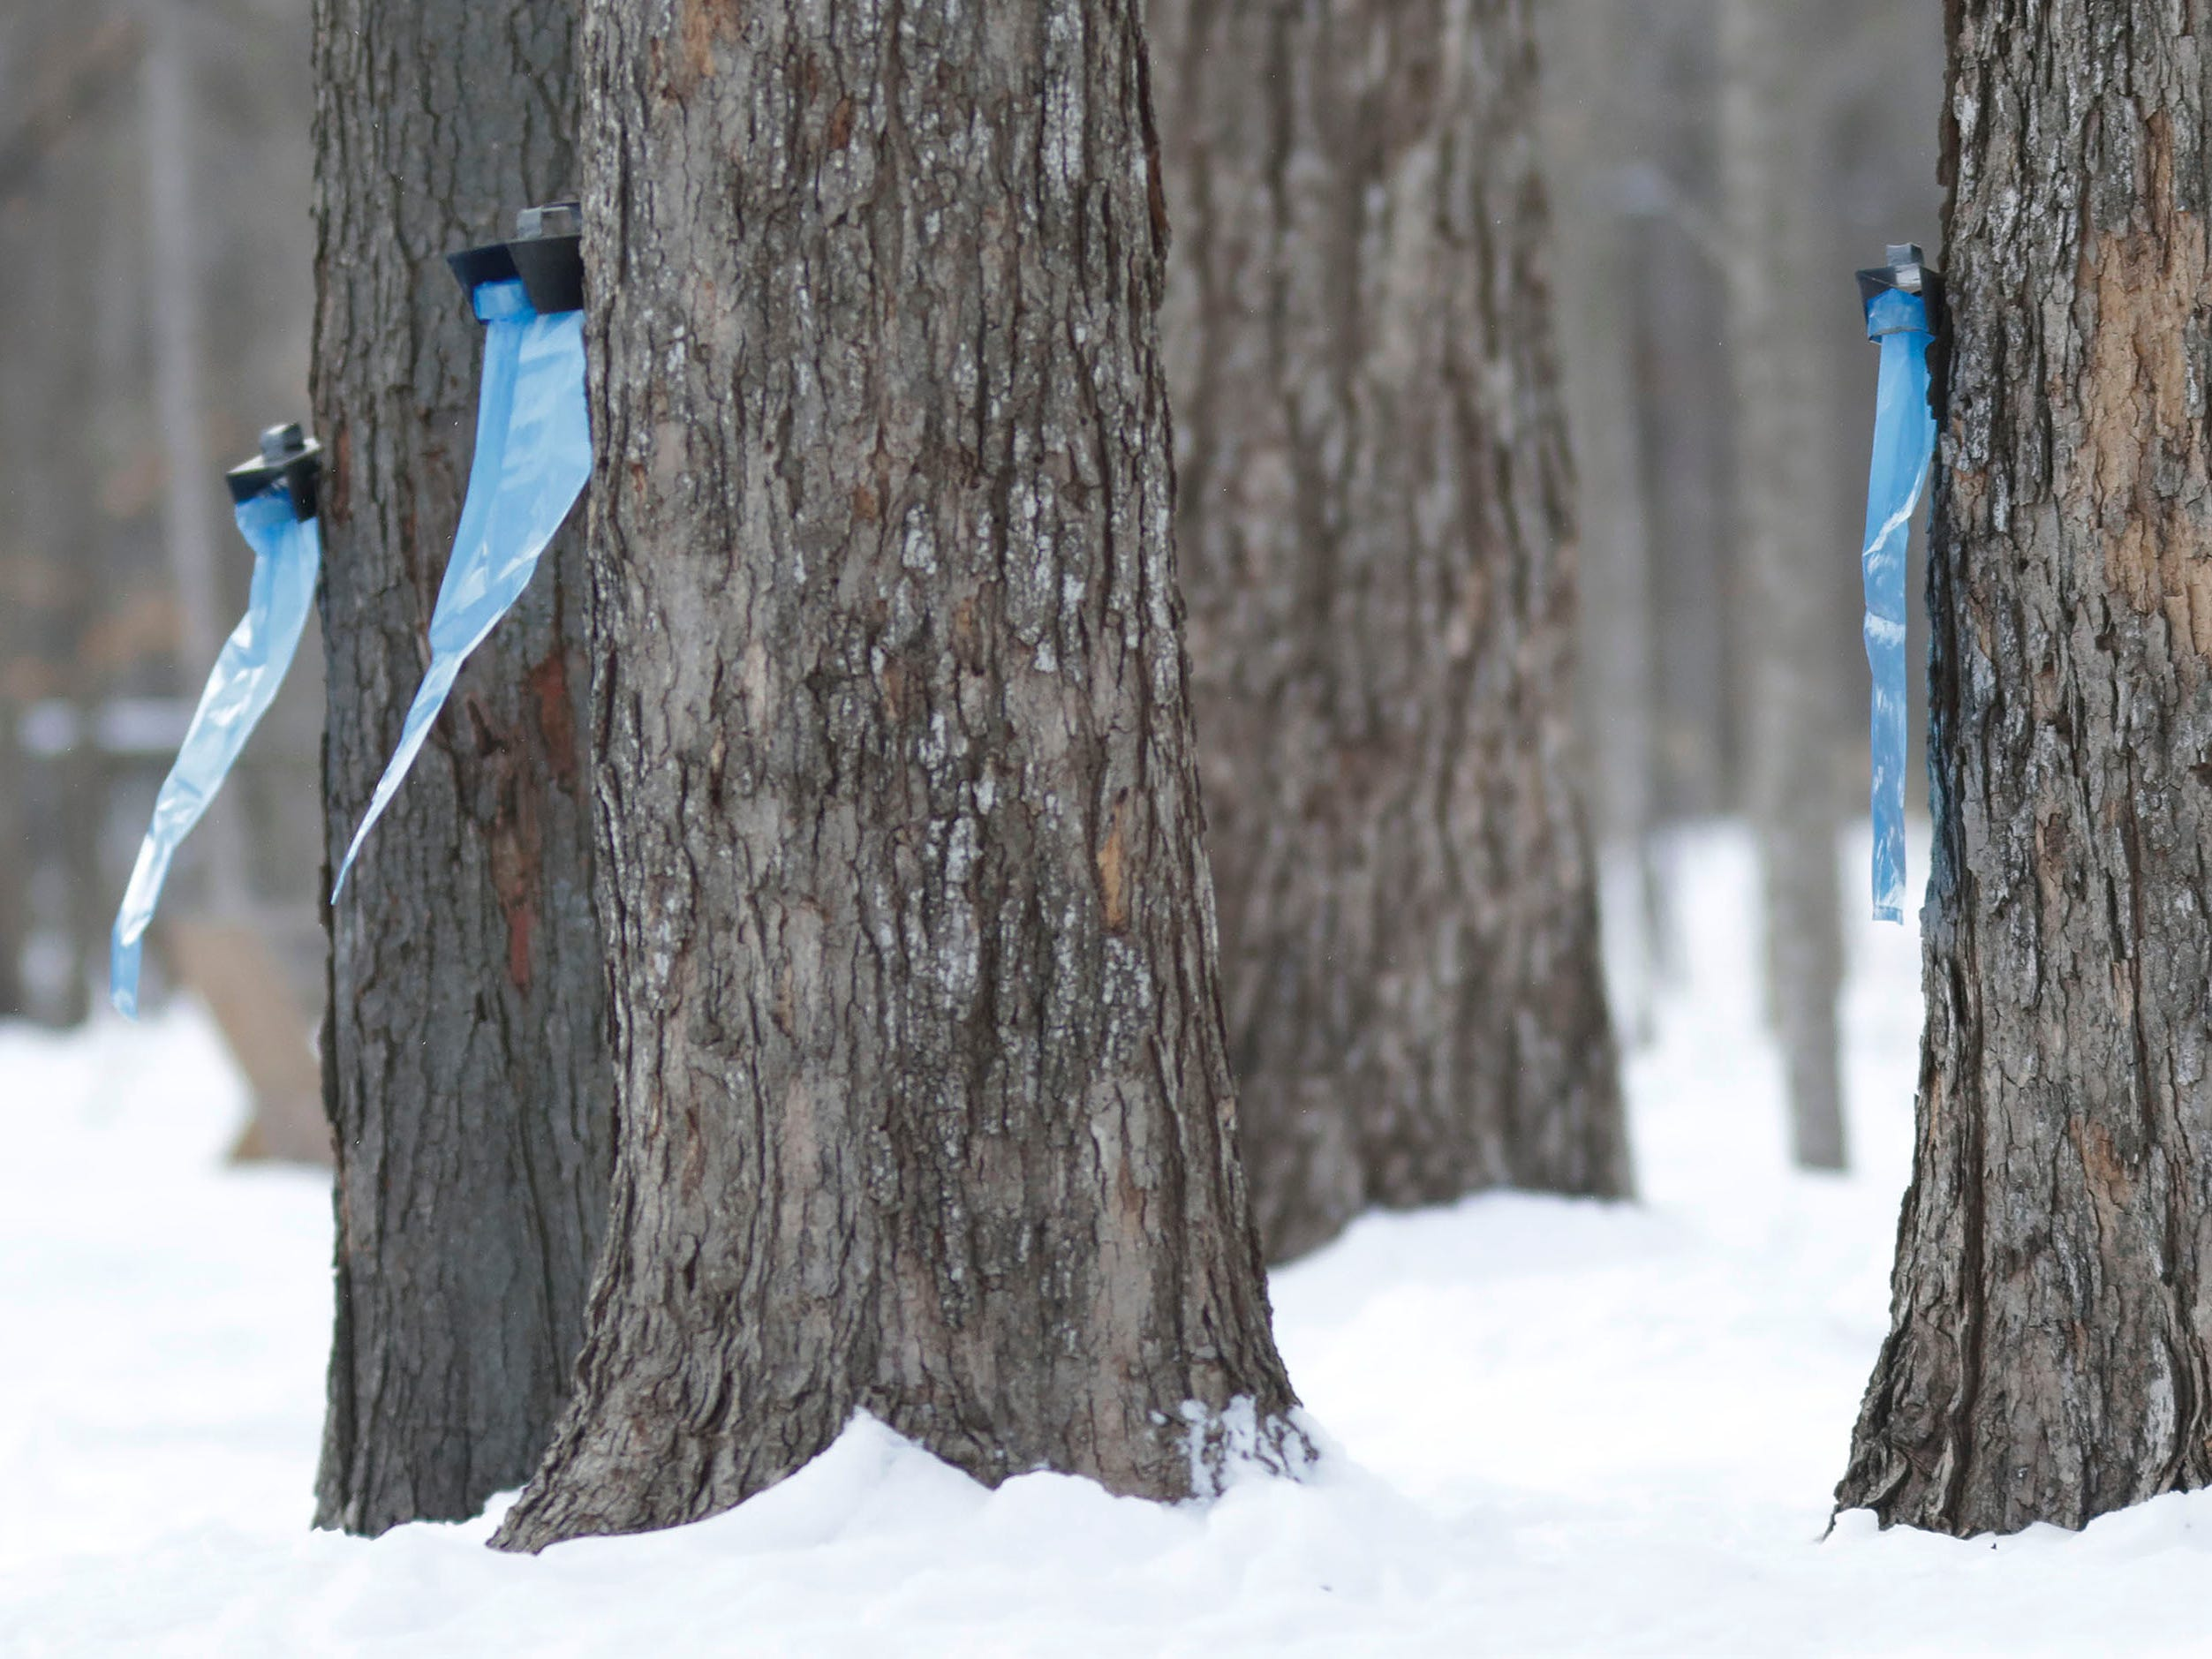 Empty maple sap bags are mounted and ready for spring's warmth to arrive at the Ellwood H. May Environmental Park, Tuesday, March 5, 2019, in Sheboygan, Wis.